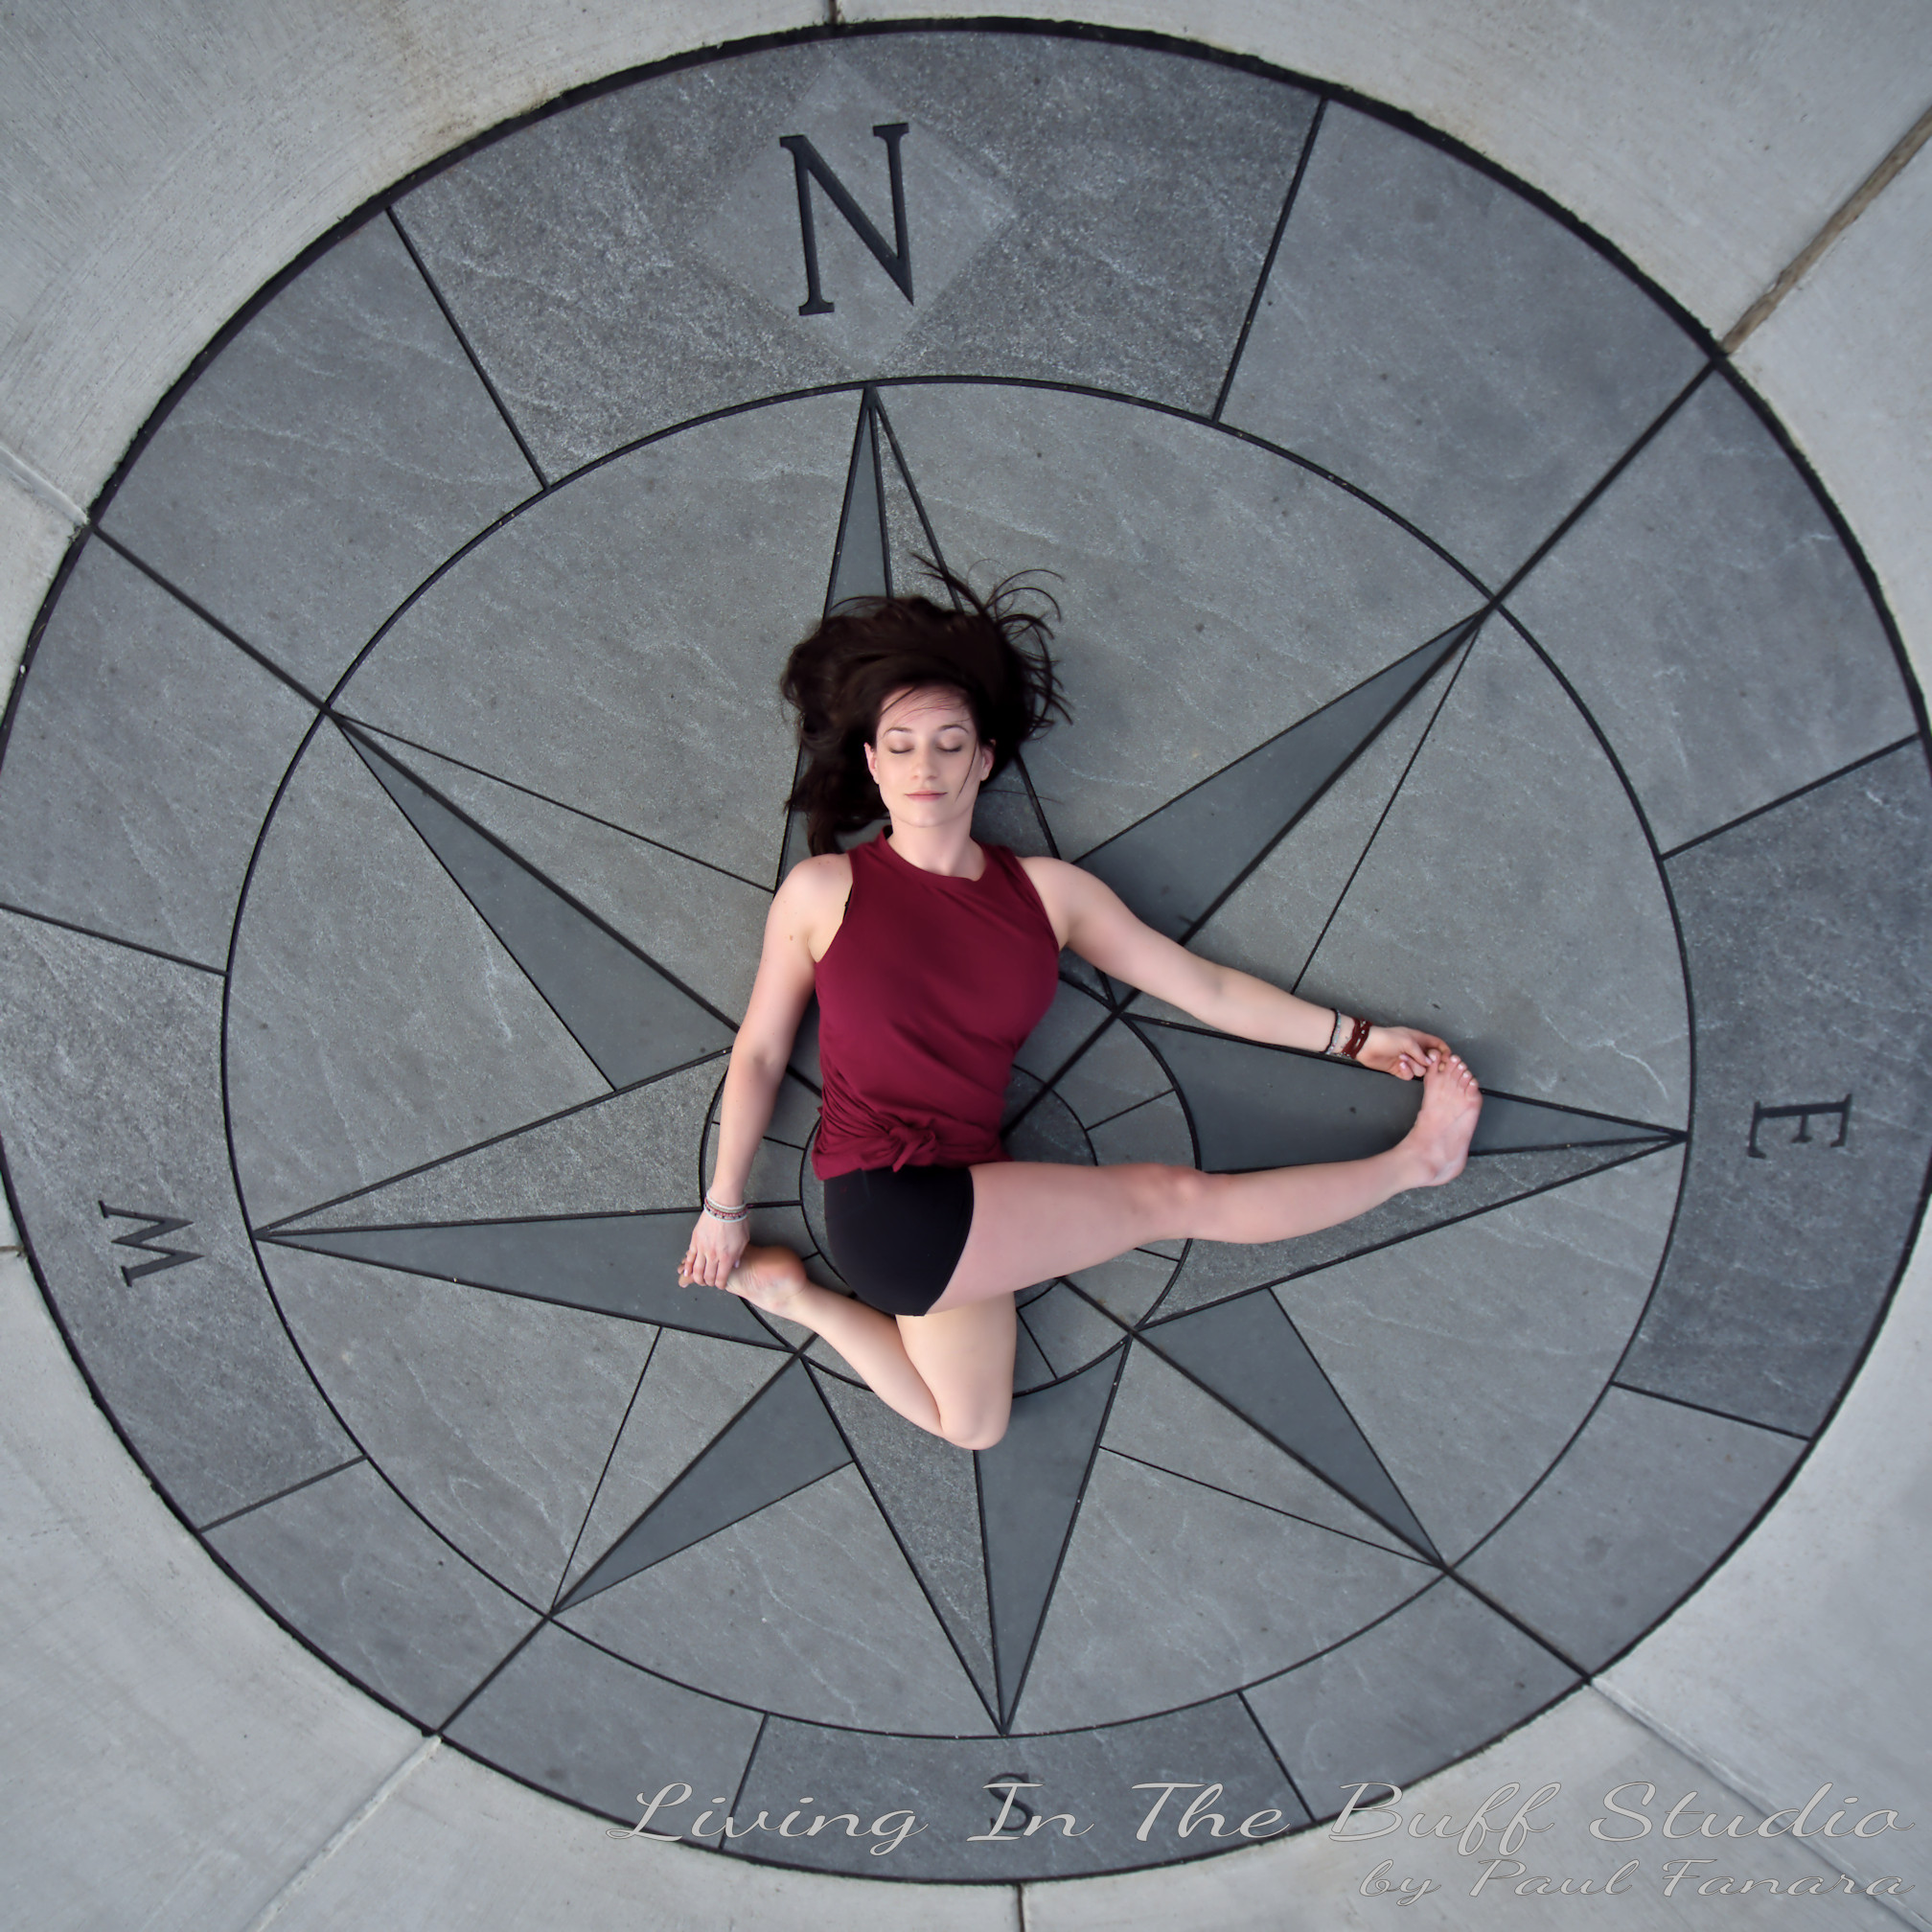 Megan Castlevetere - Dancer, Yoga Instructor, Business Owner